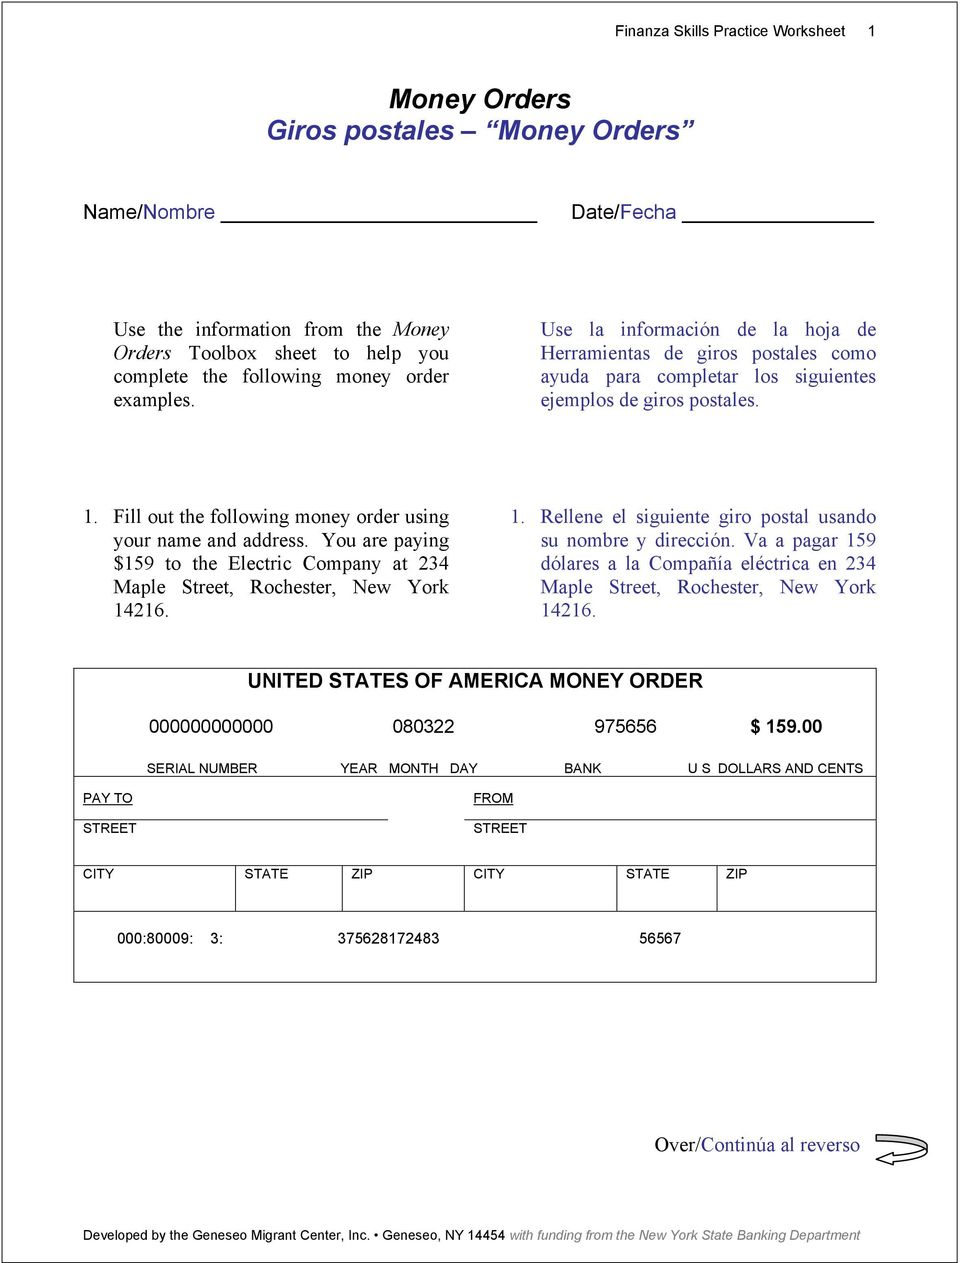 Fill out the following money order using your name and address. You are paying $159 to the Electric Company at 234 Maple Street, Rochester, New York 14